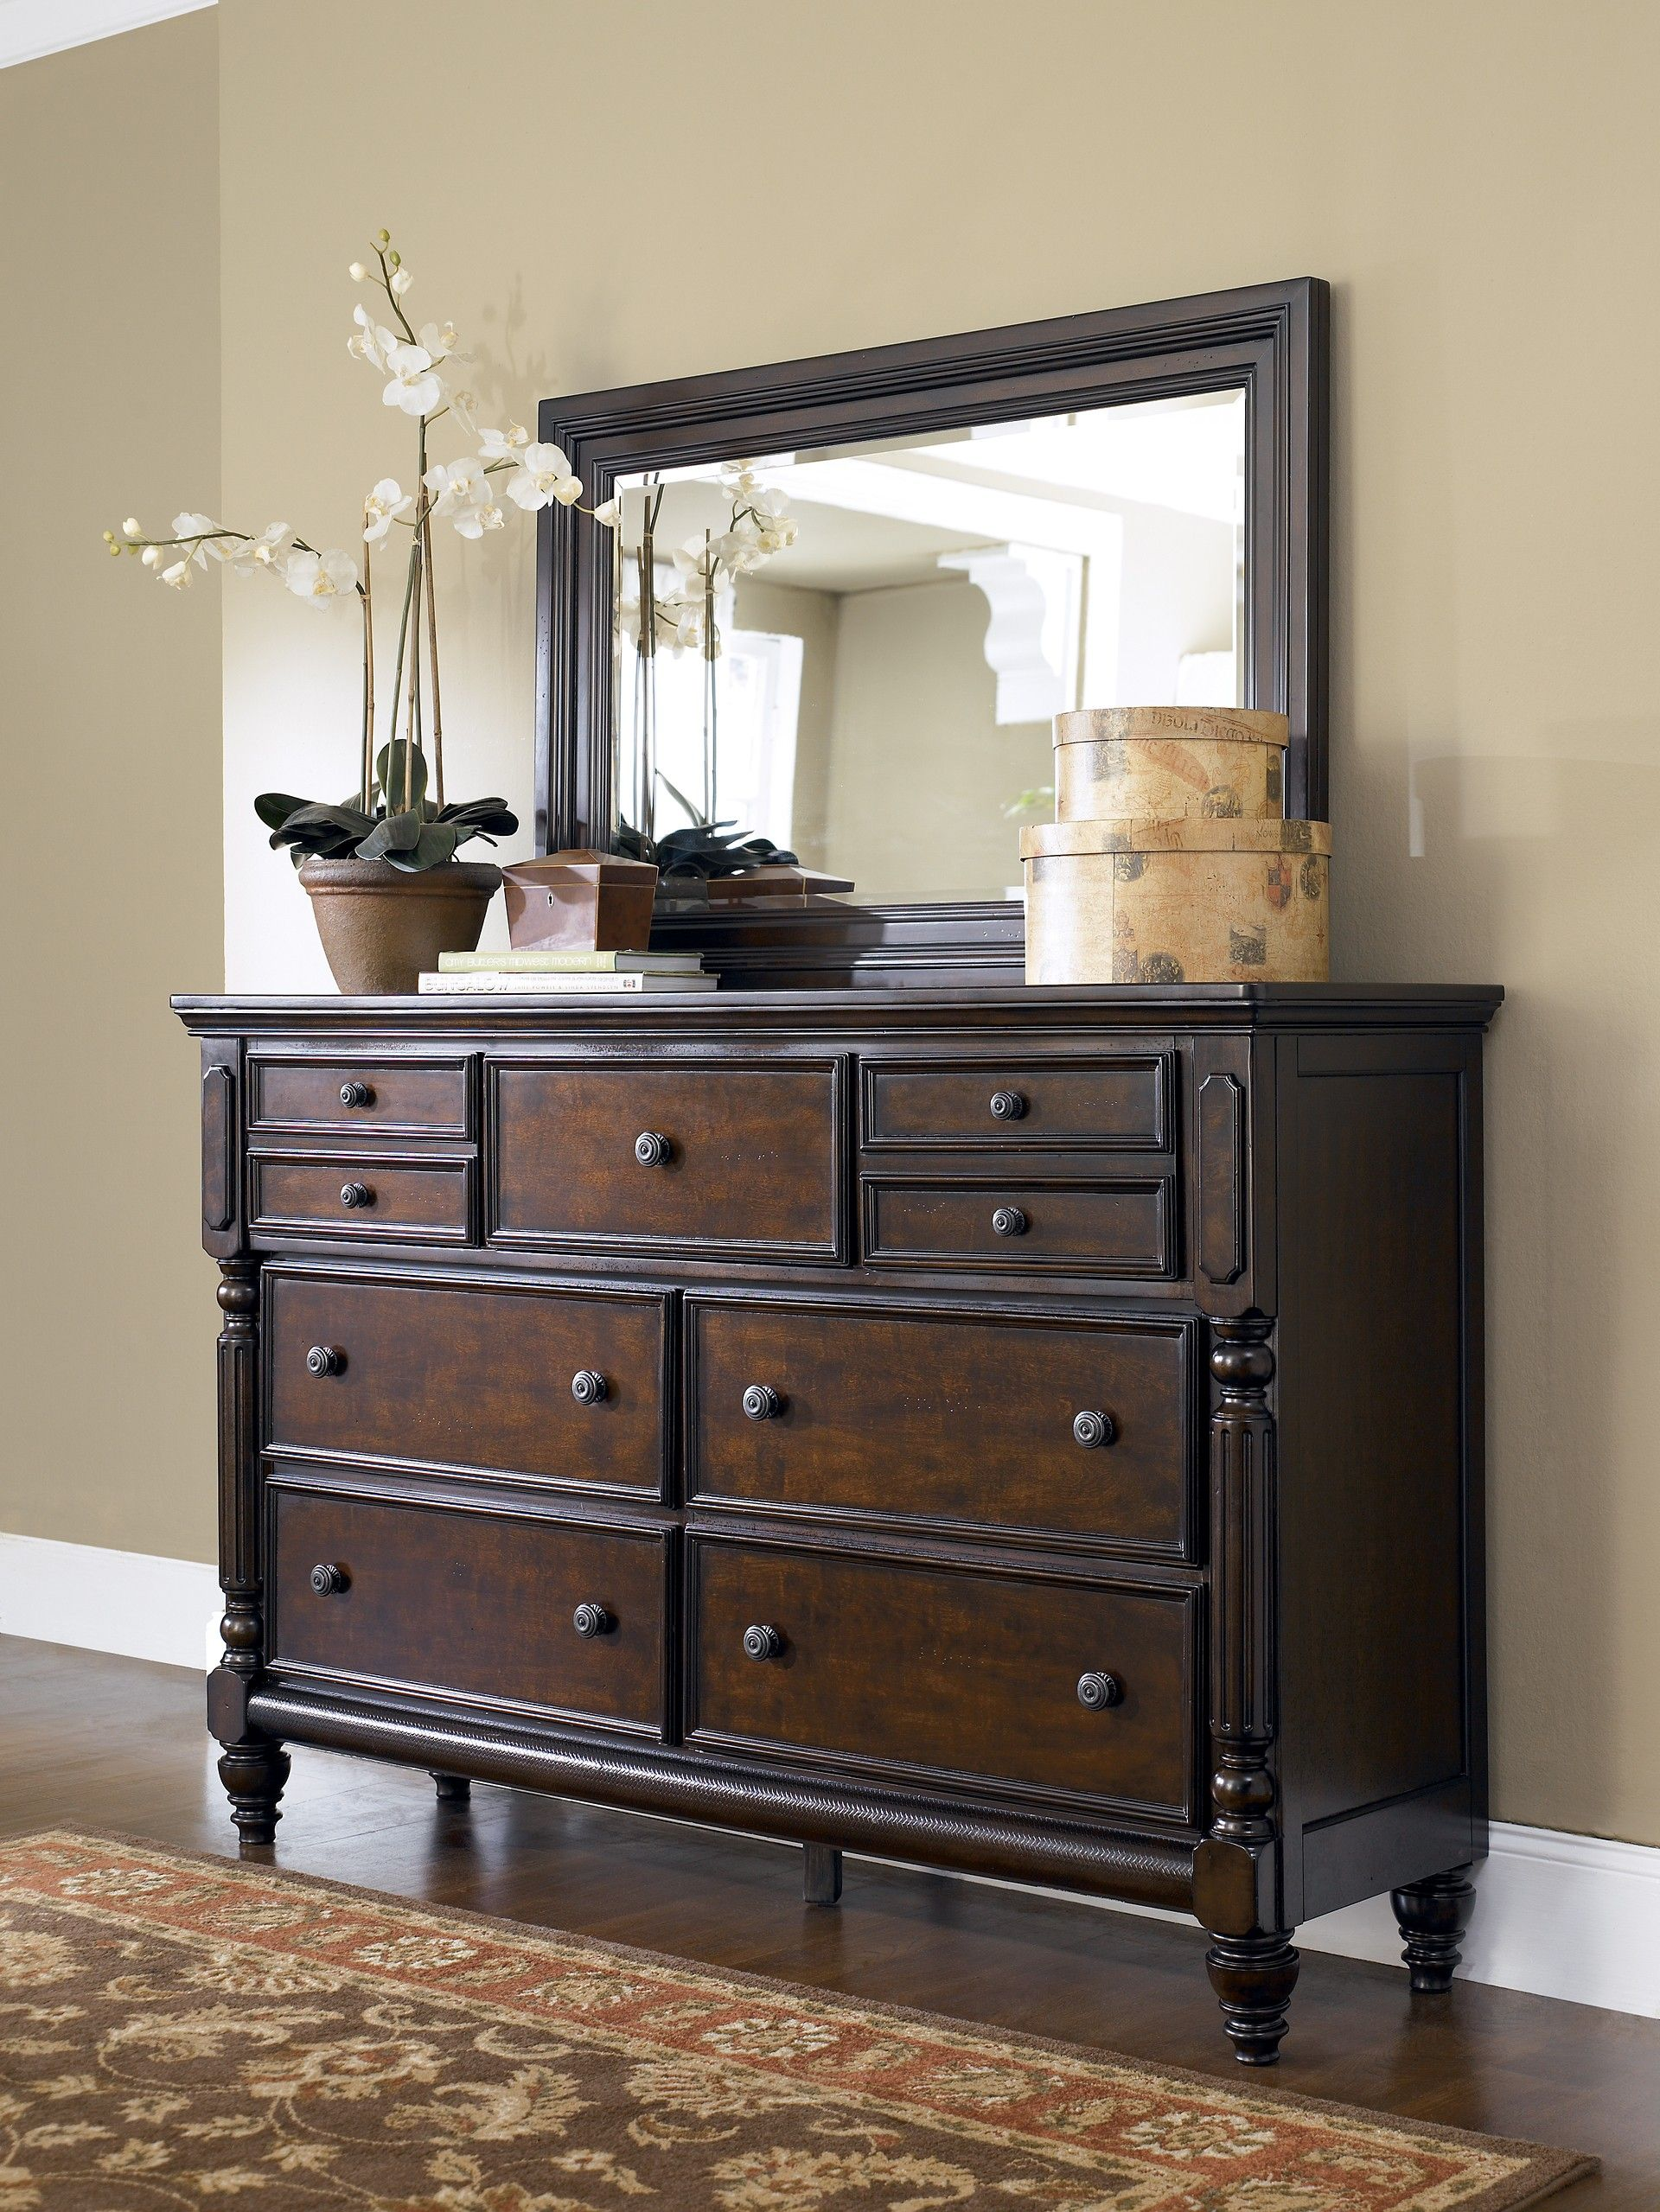 Ashley Key Town Millennium Dresser   With Its Sophisticated Beauty, Ornate  Details And Classic Lines, The Key Town Collection By Ashley Furniture  Would Make ...